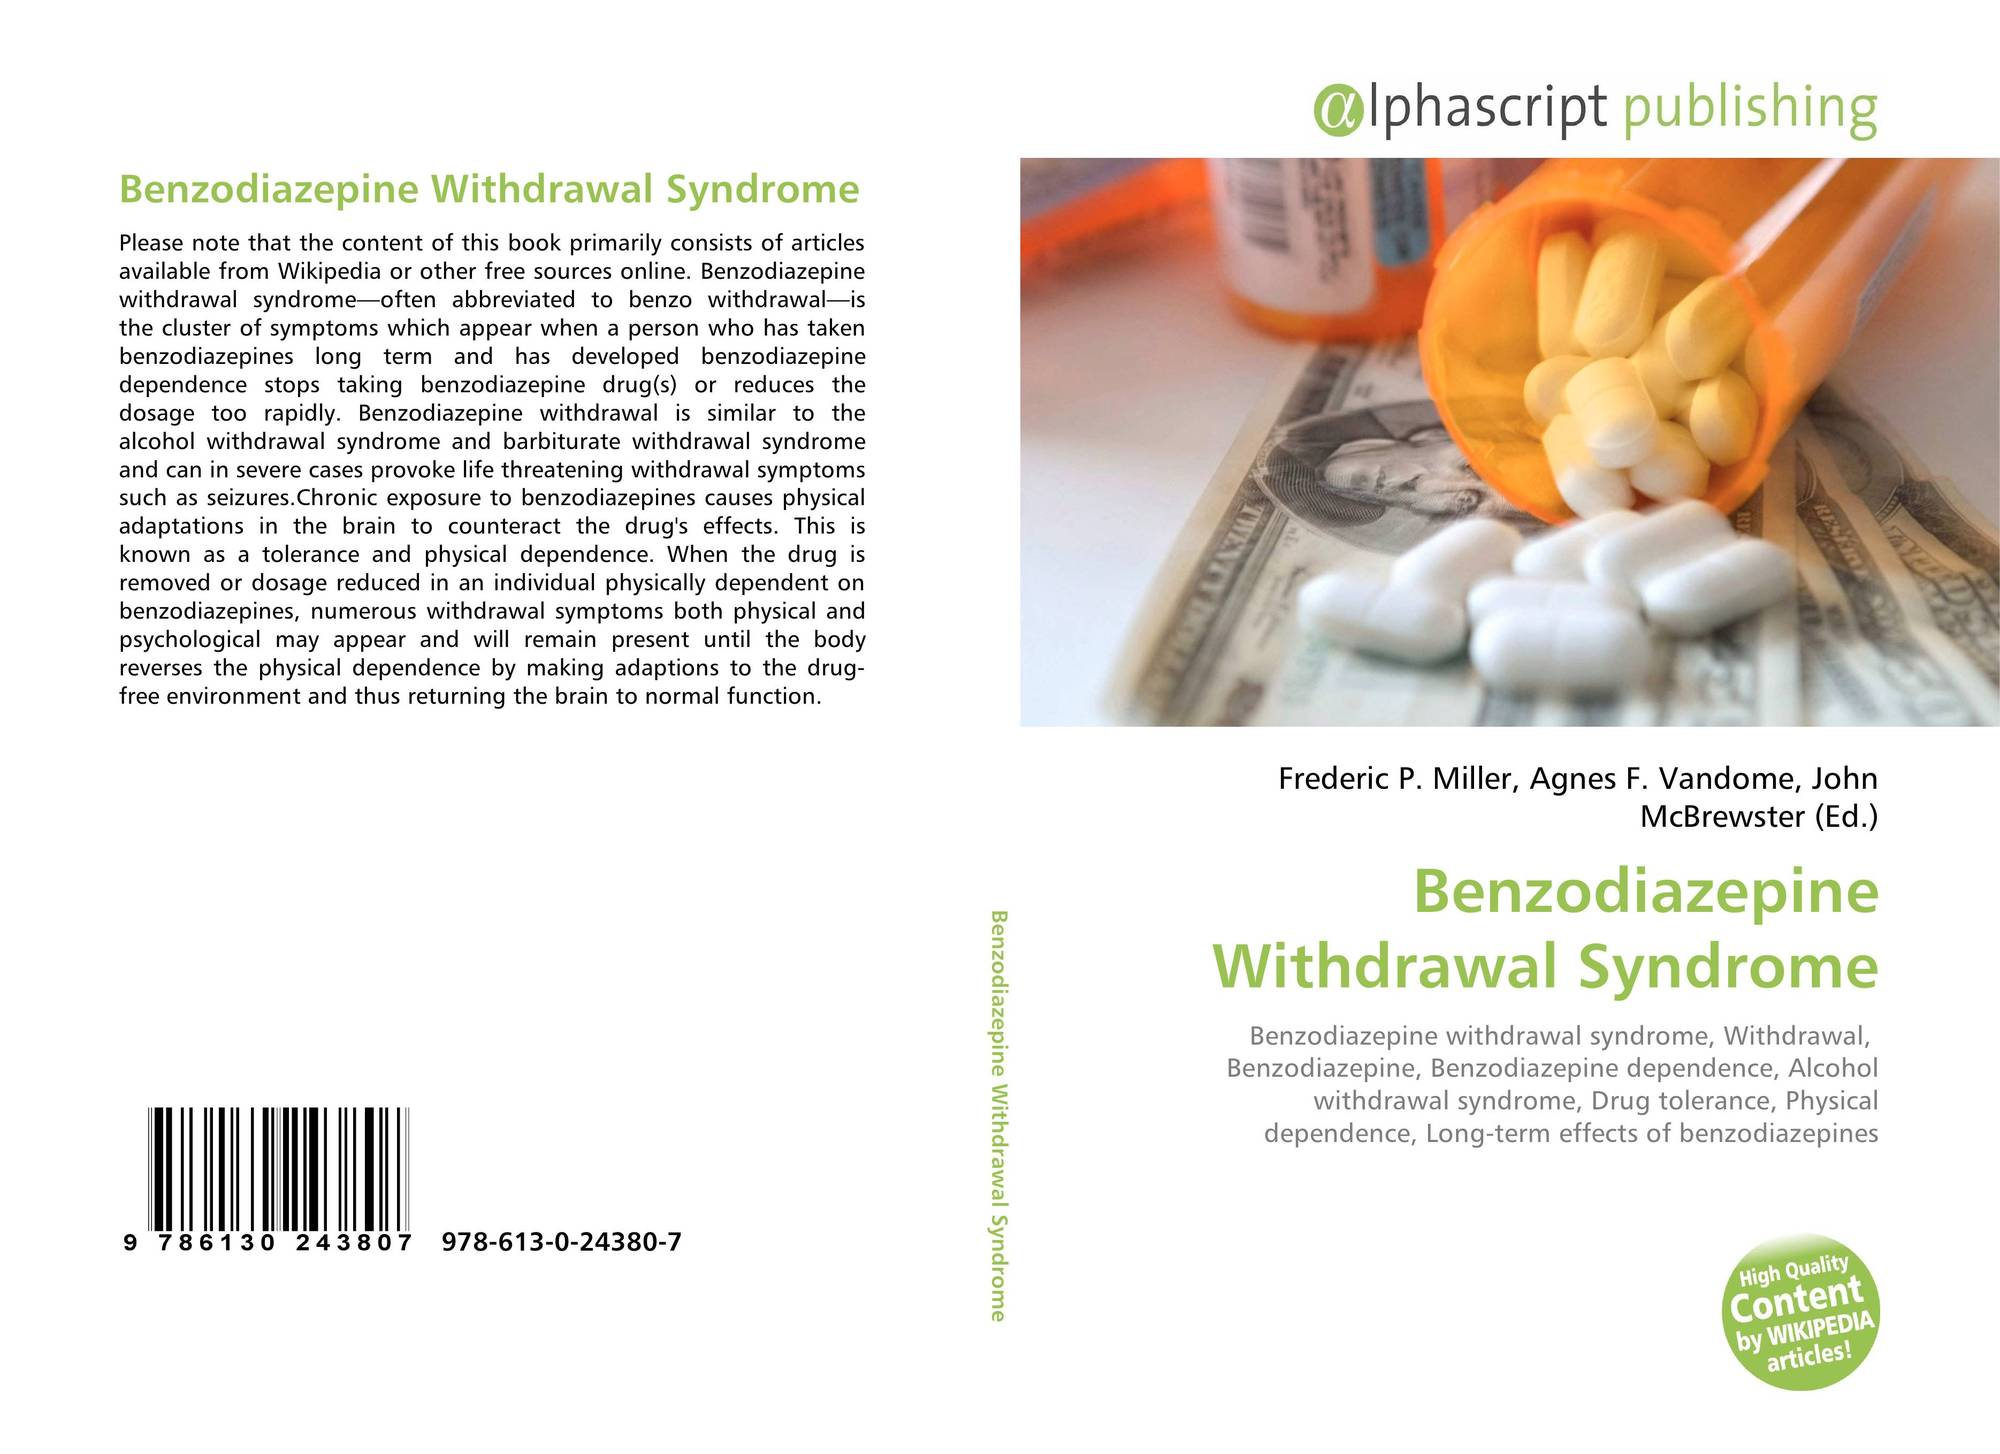 Benzodiazepine Withdrawal Syndrome, 978-613-0-24380-7